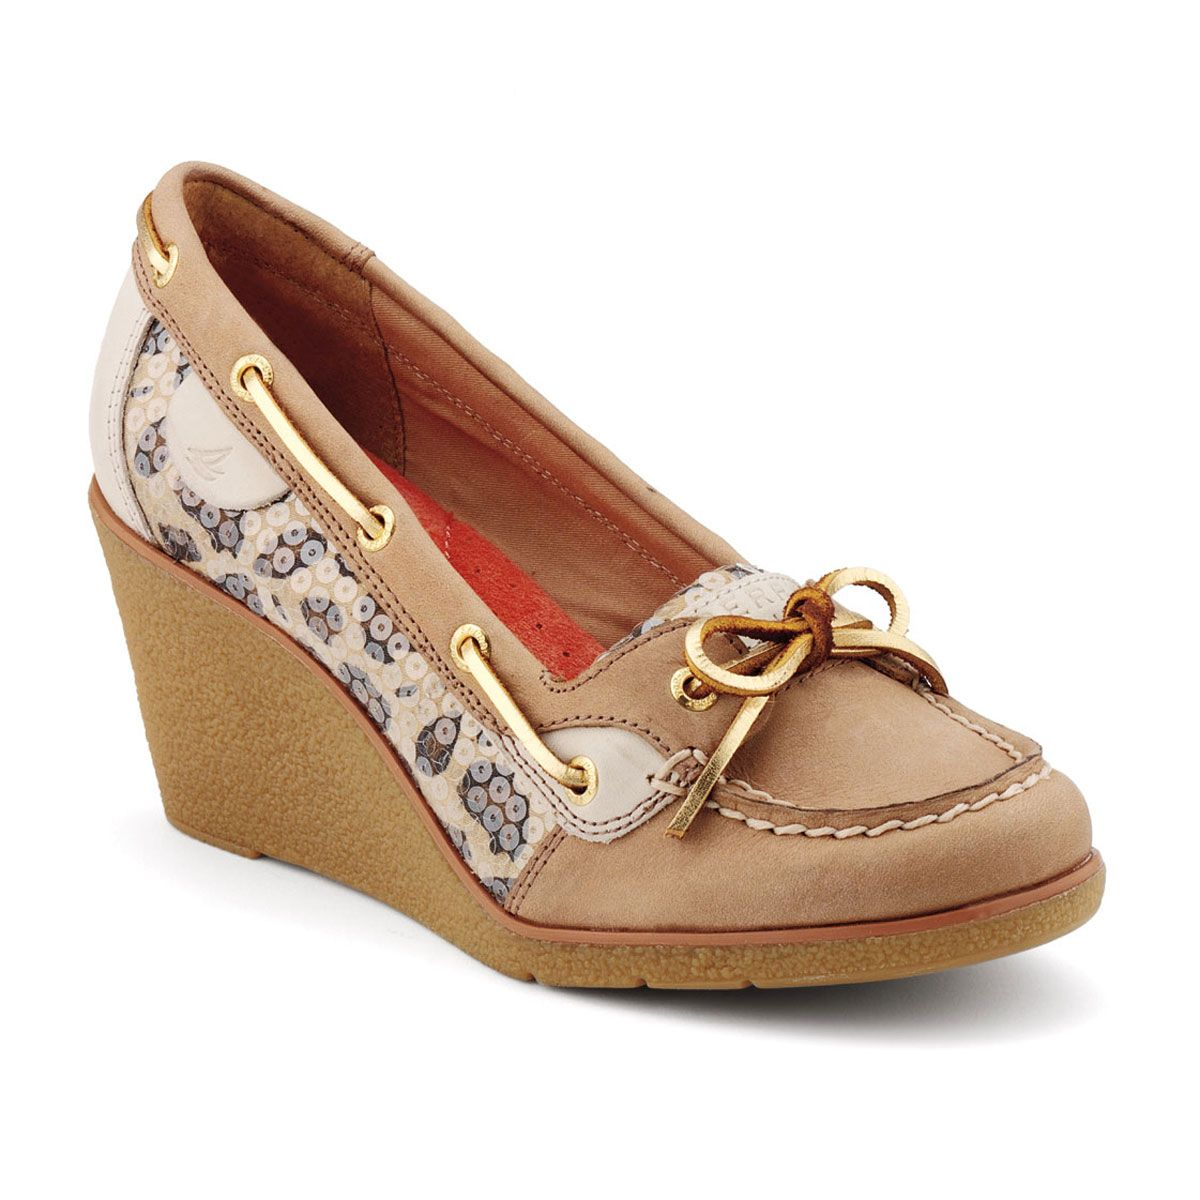 Sperry + Wedges = must add to my collection of shoes immediately. they  would be a work expense right?